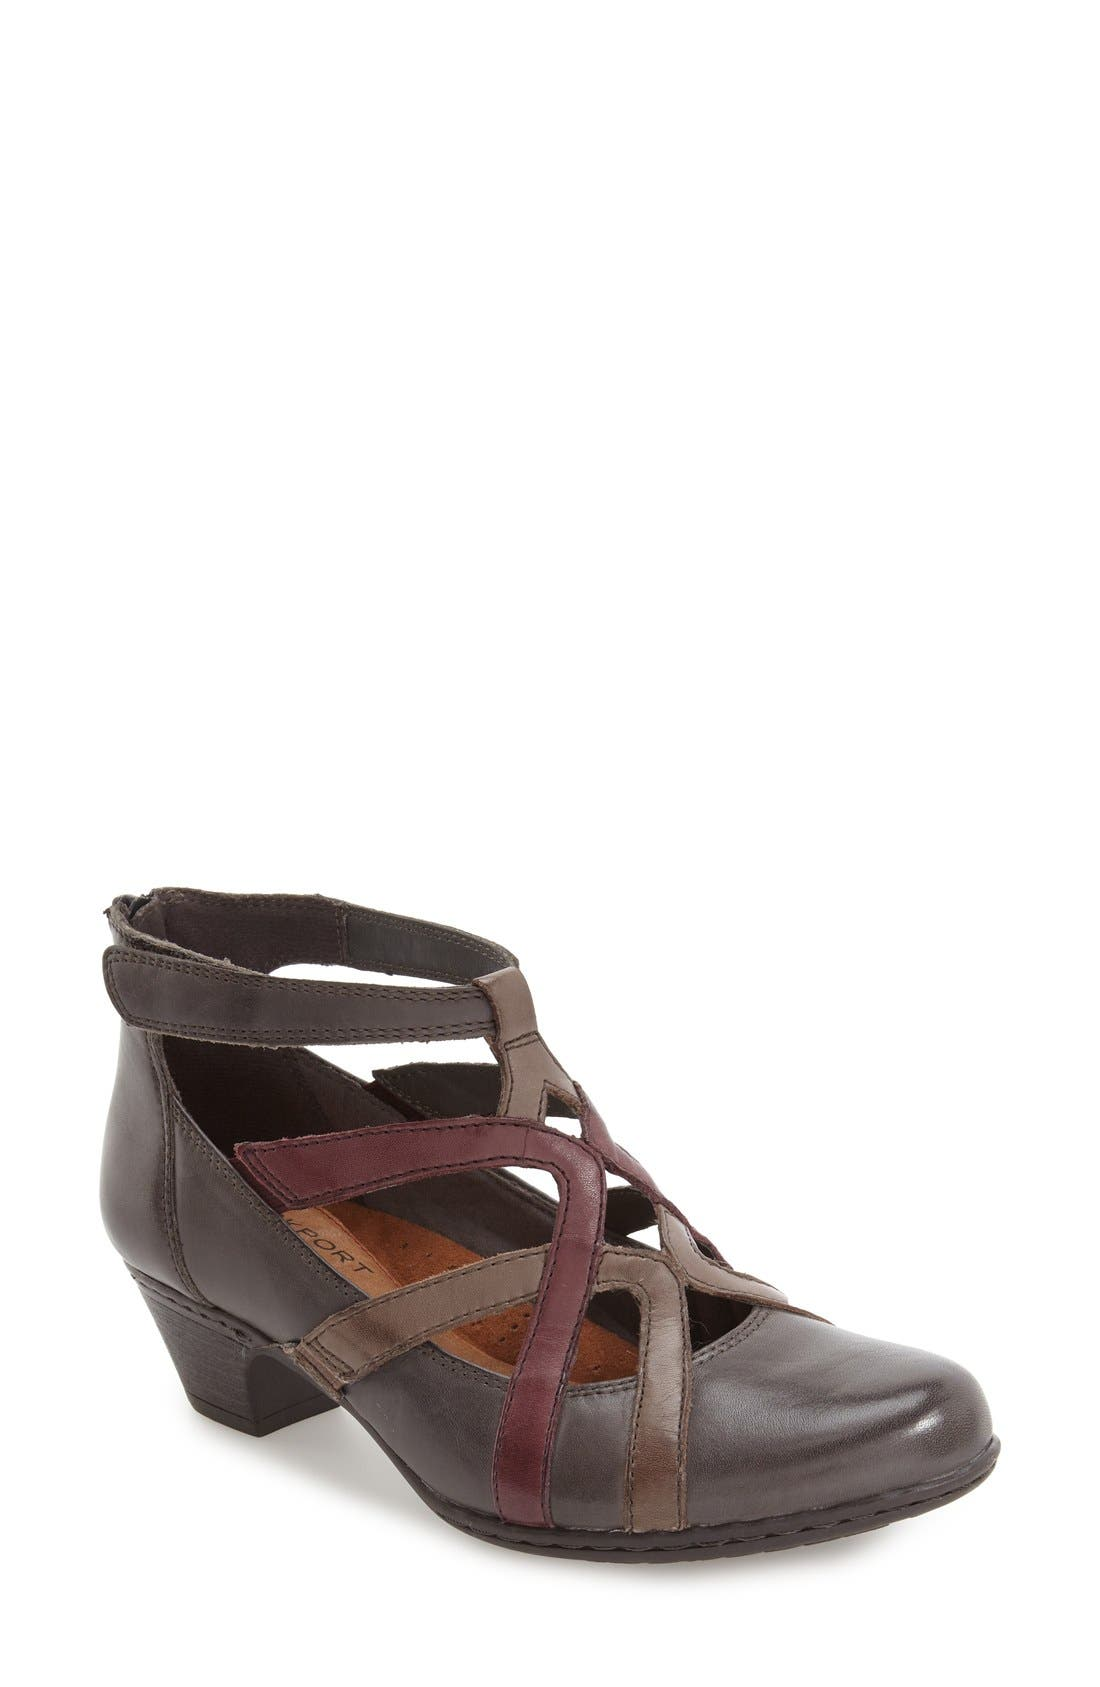 ROCKPORT COBB HILL Adrina Pump, Main, color, GREY LEATHER